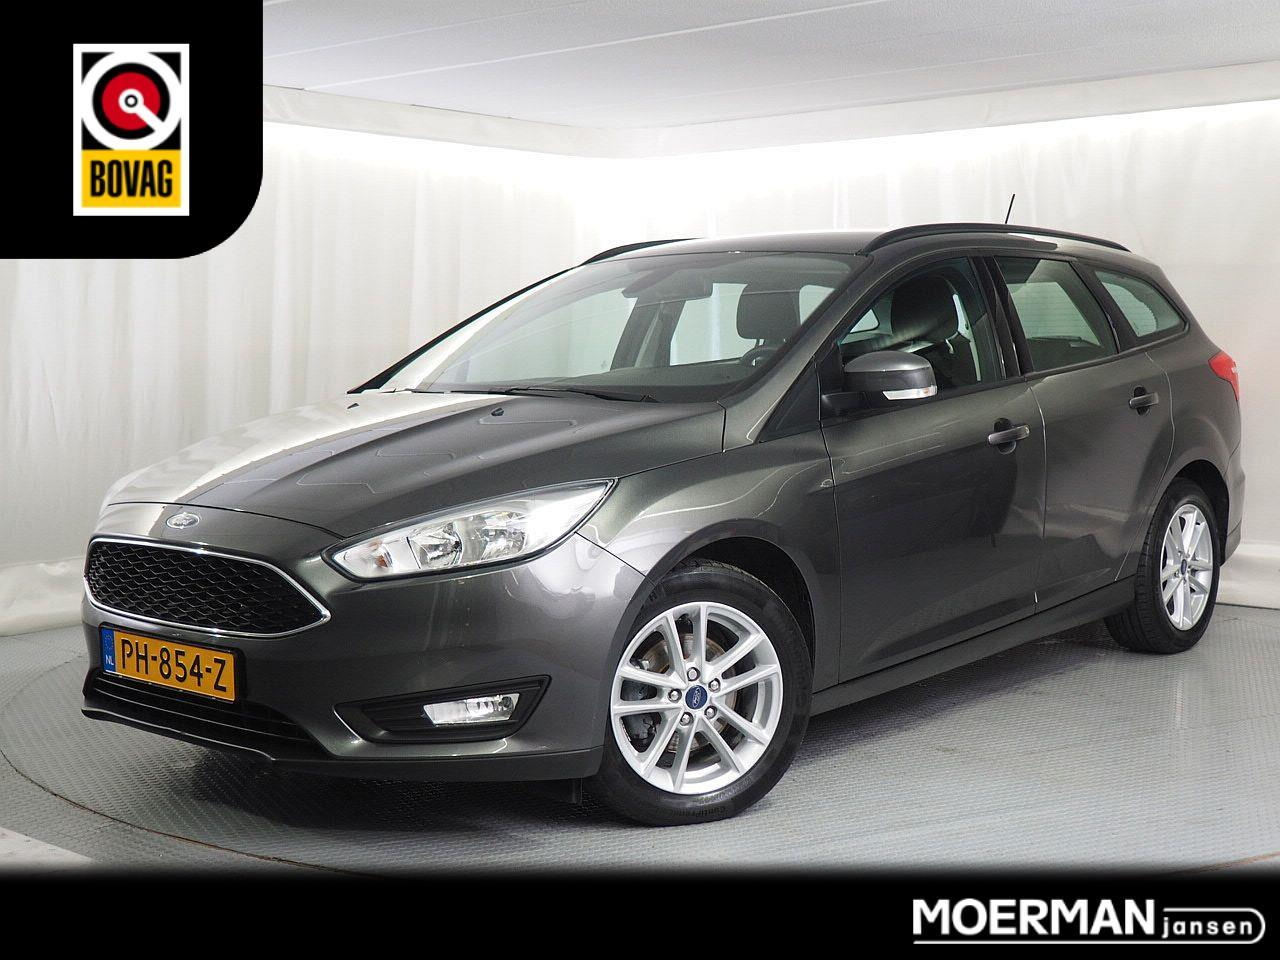 Ford Focus Wagon edition 125pk / navigatie / apple carplay / trekhaak / 1e eigenaar